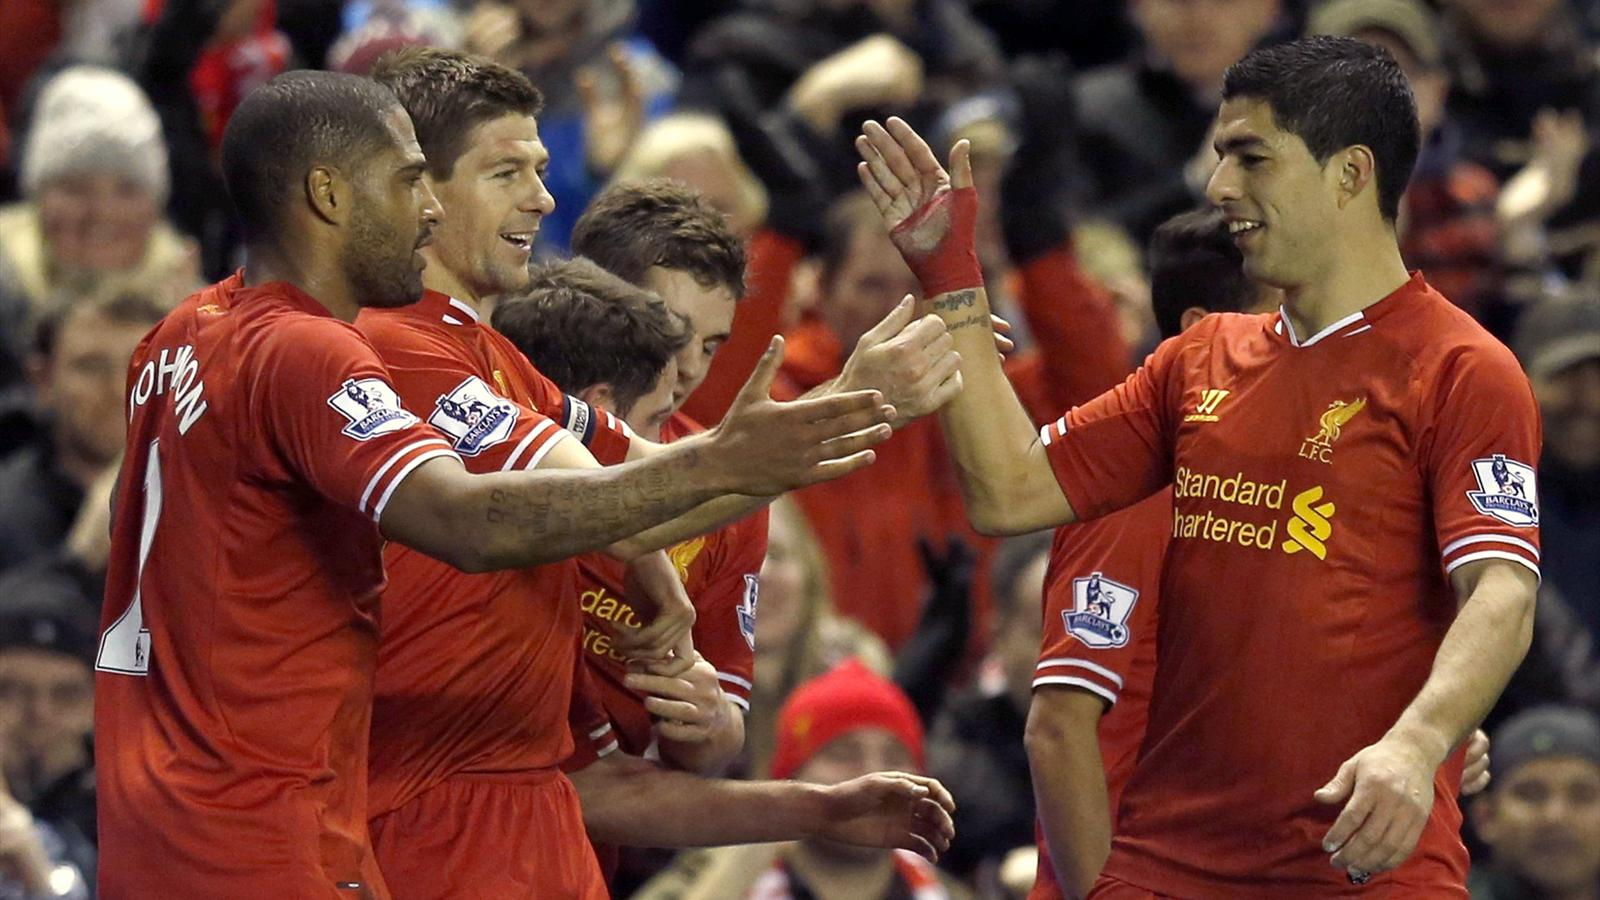 Liverpool's Steven Gerrard (L) celebrates with teammate Luis Suarez (R) after scoring a goal during their English Premier League (Reuters)